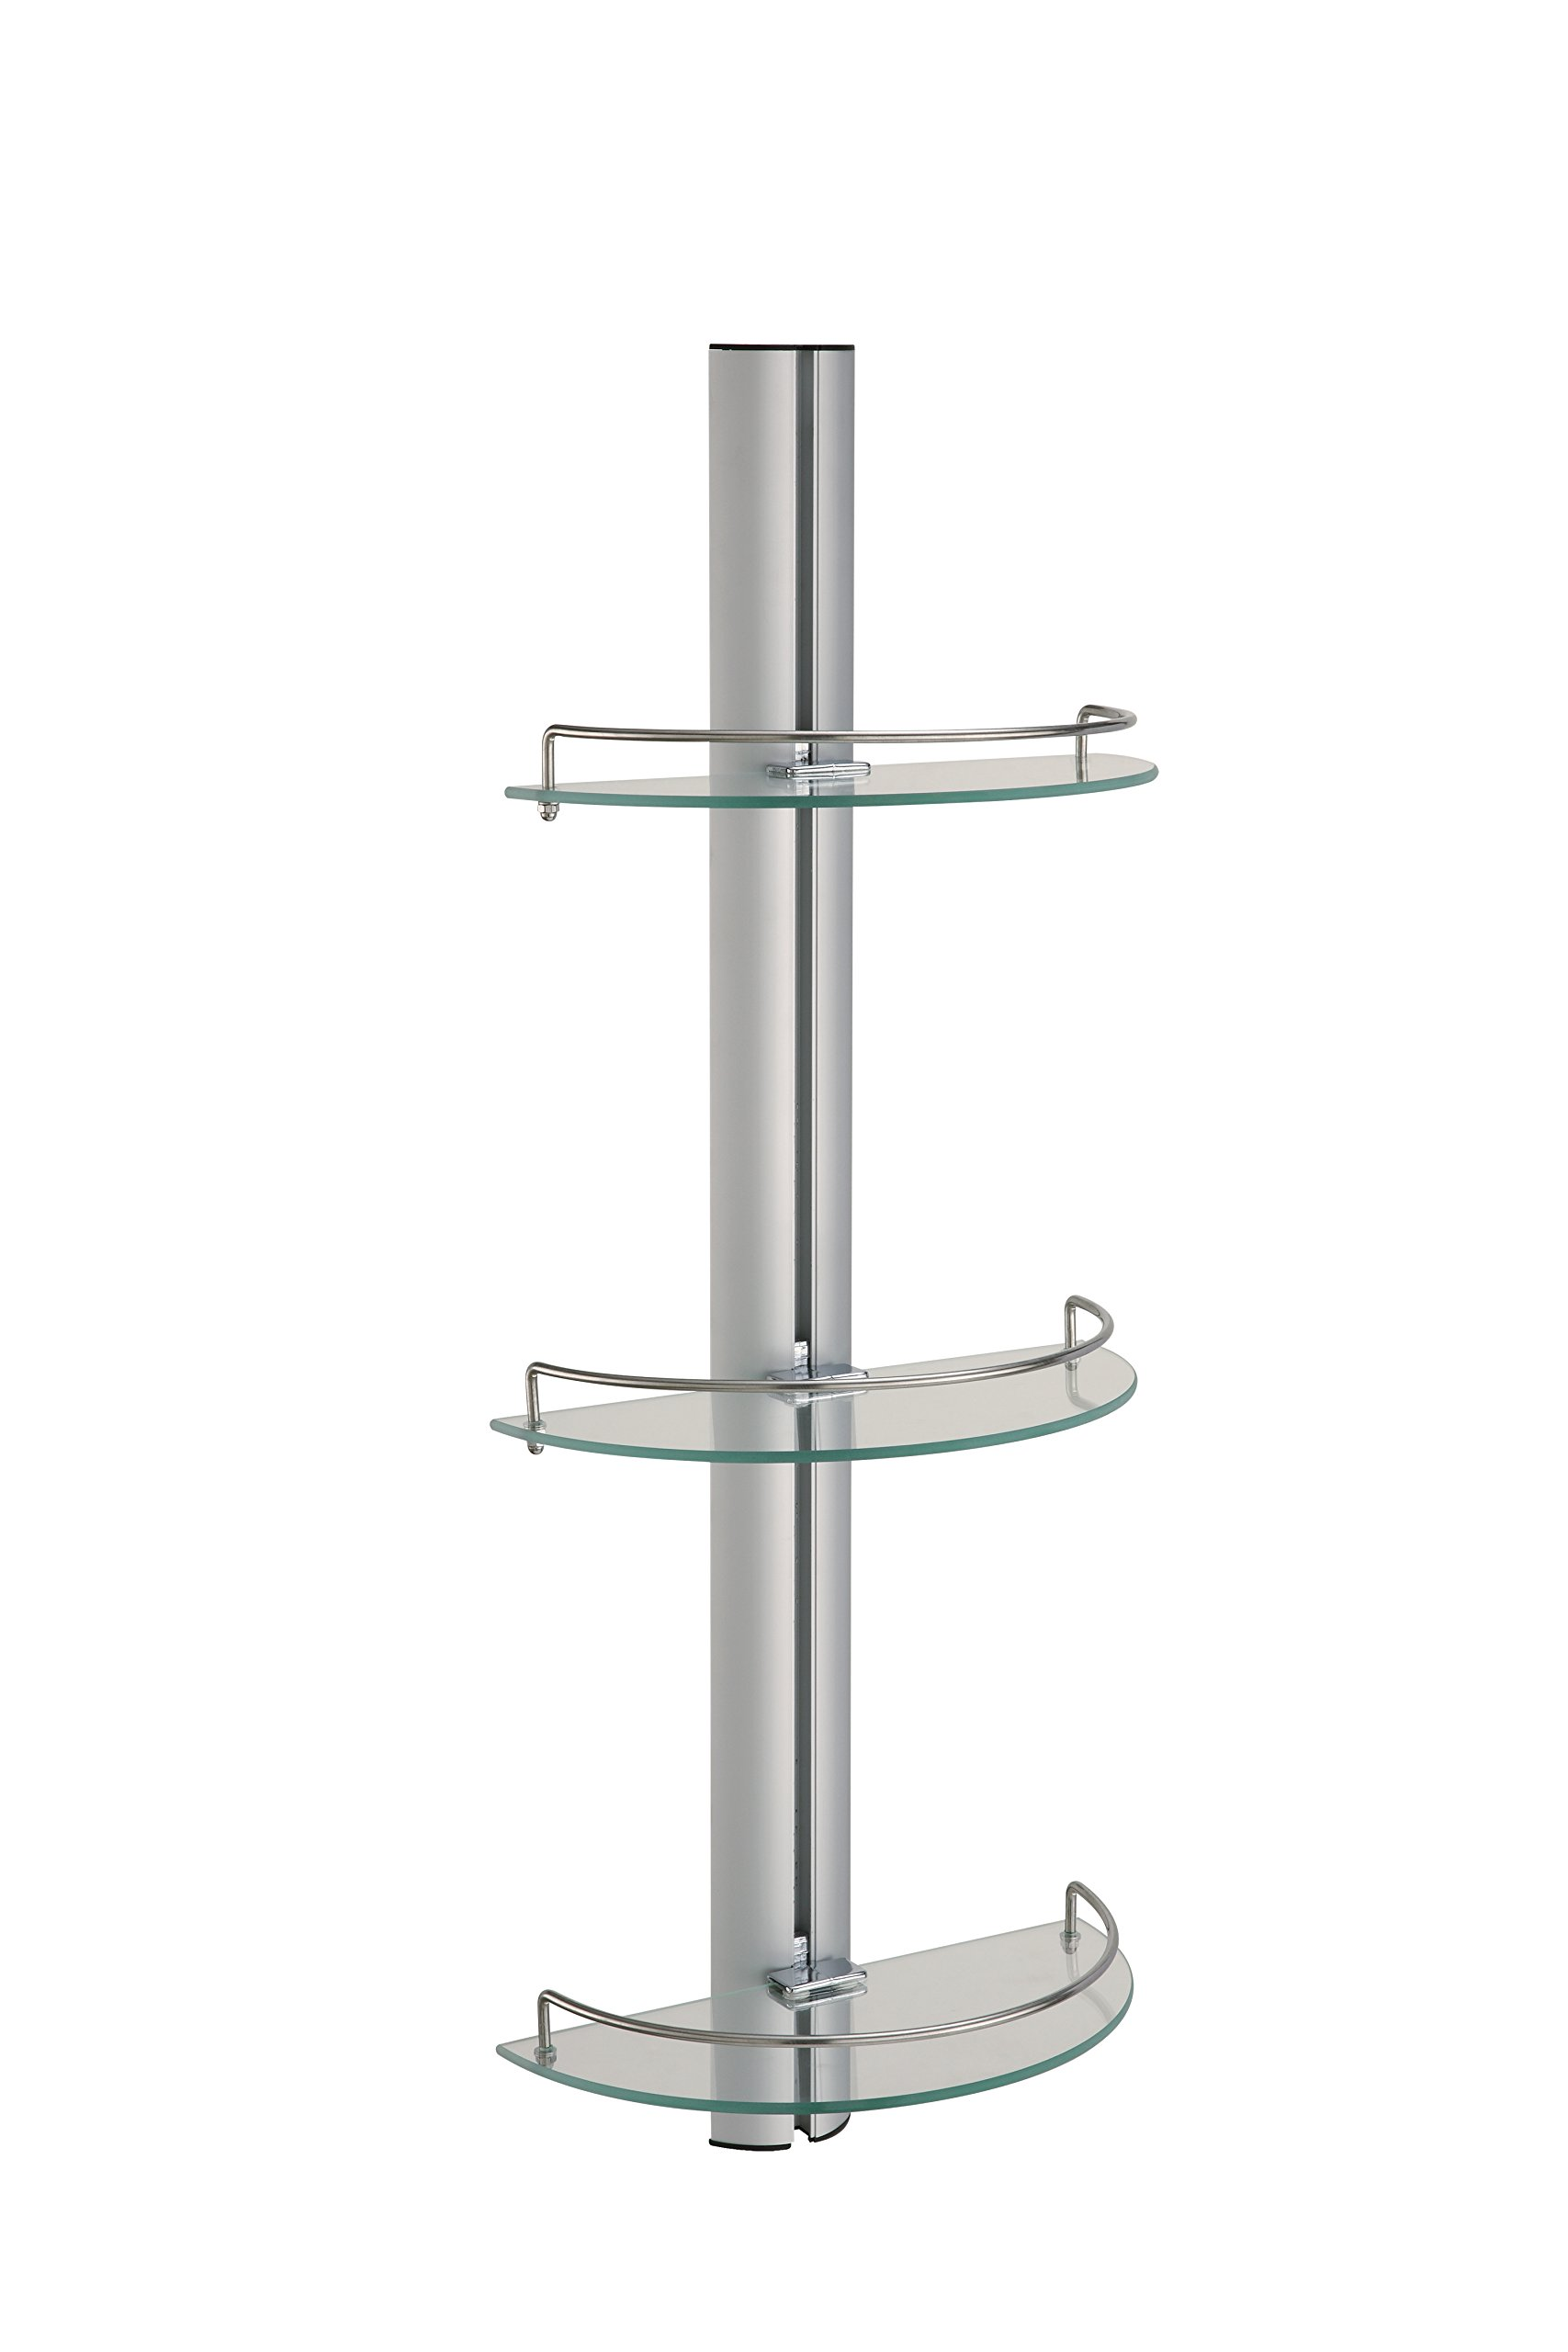 Organize It All Mounted 3 Tier Half Moon Bathroom Glass with Stainless Steel Rail Shelf